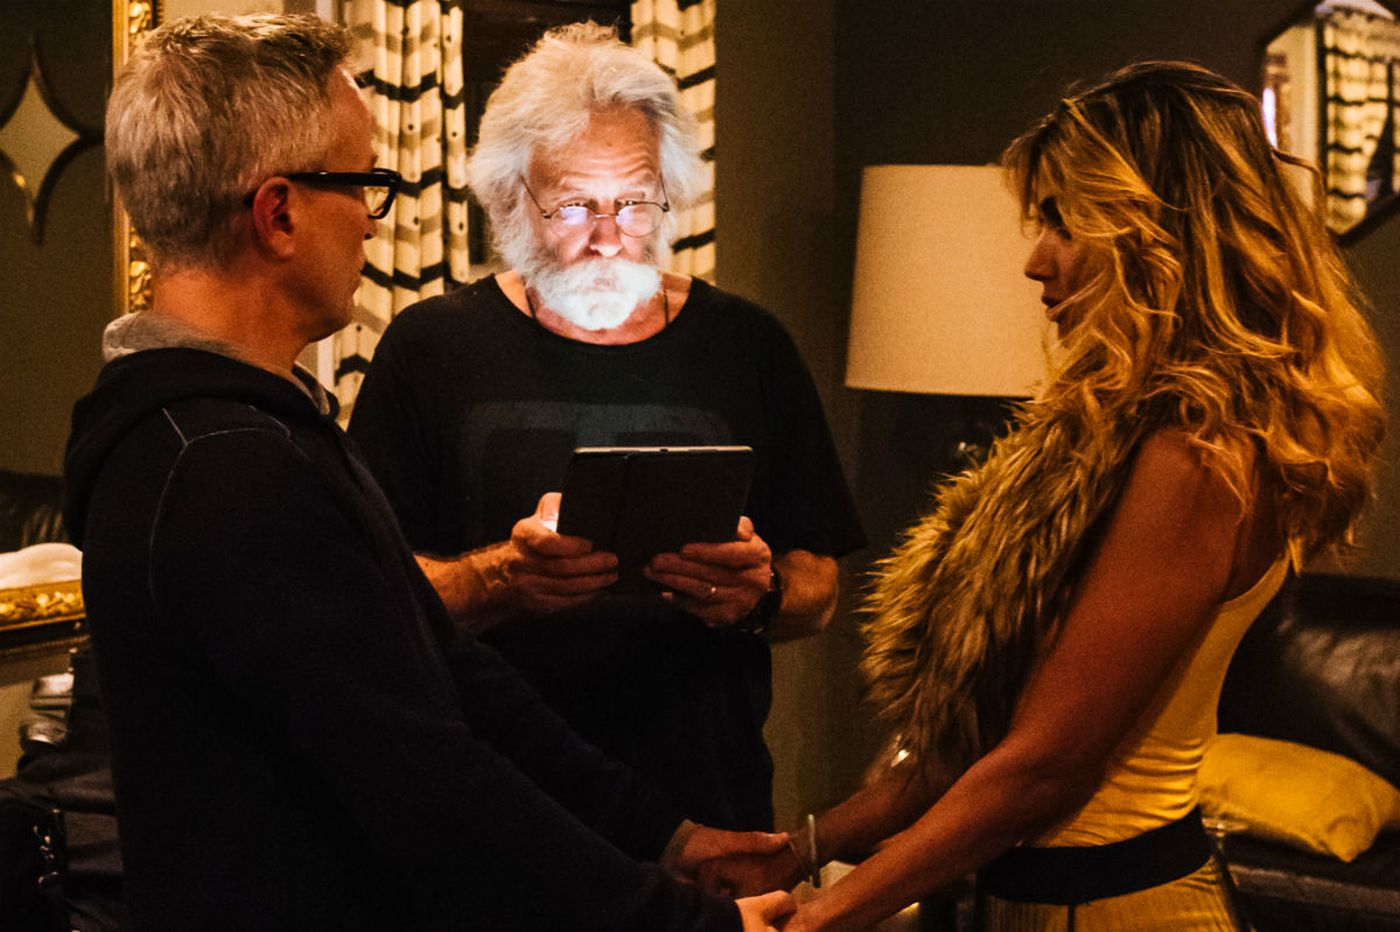 Bob Weir marries couple backstage during Tower gig